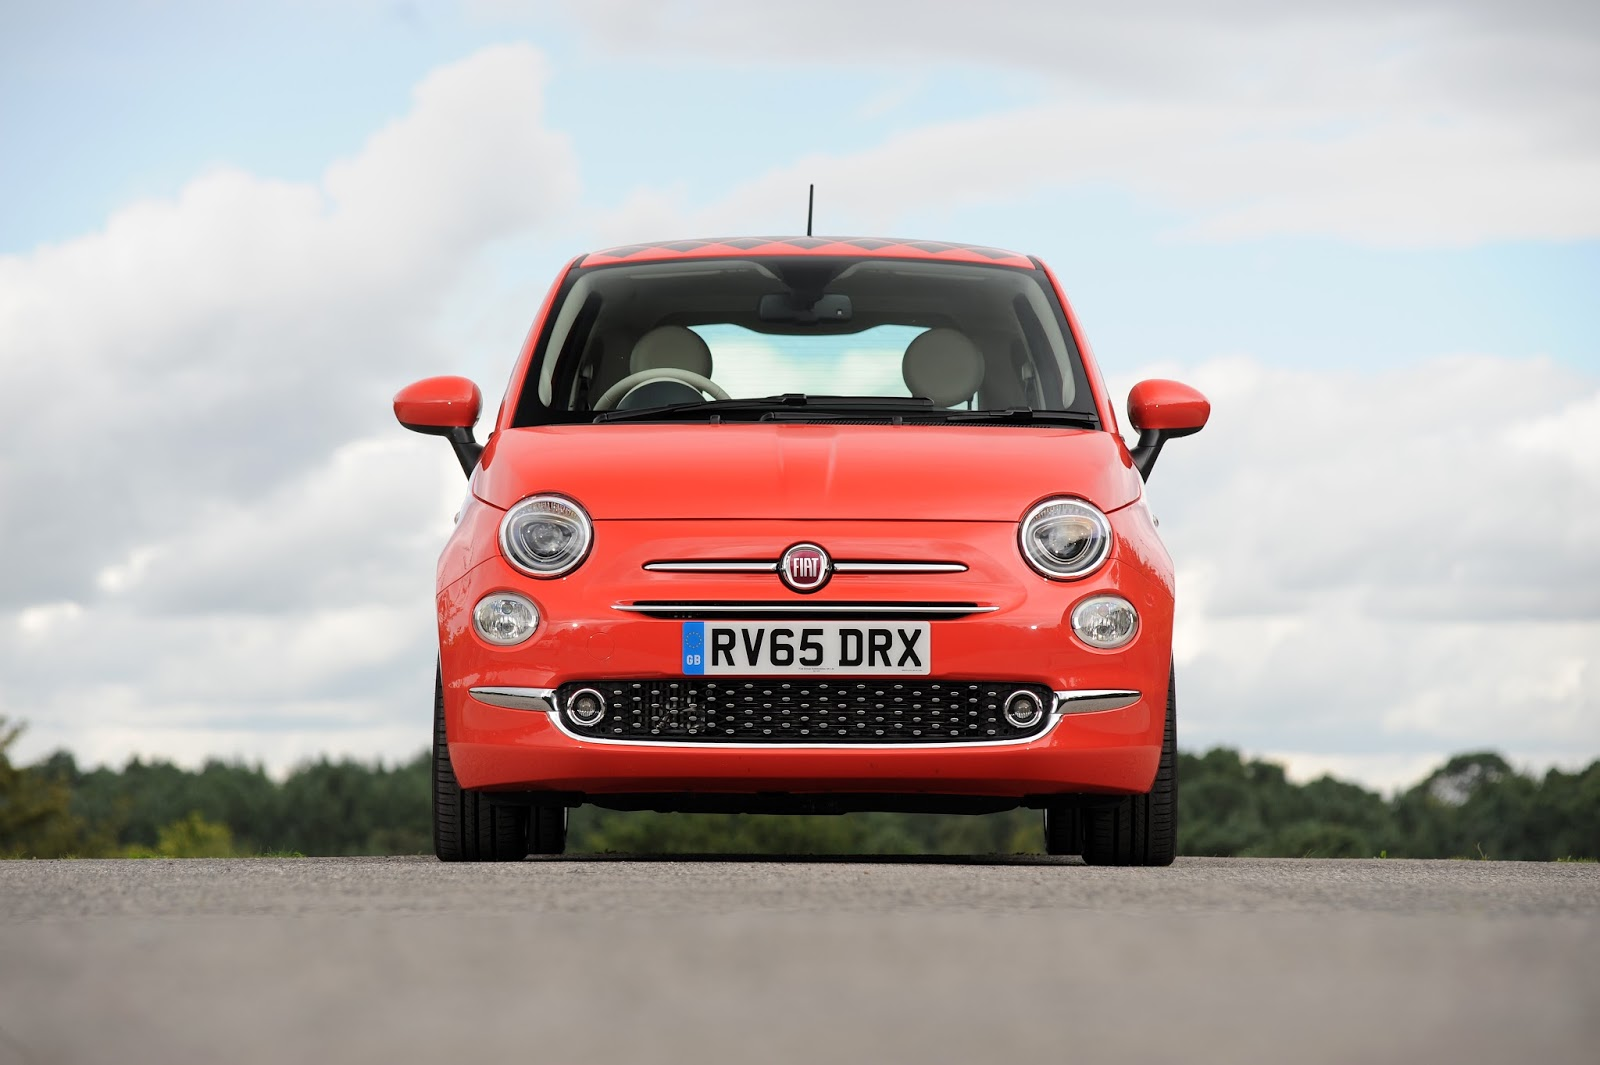 new car test: #newfiat500 hits uk streets